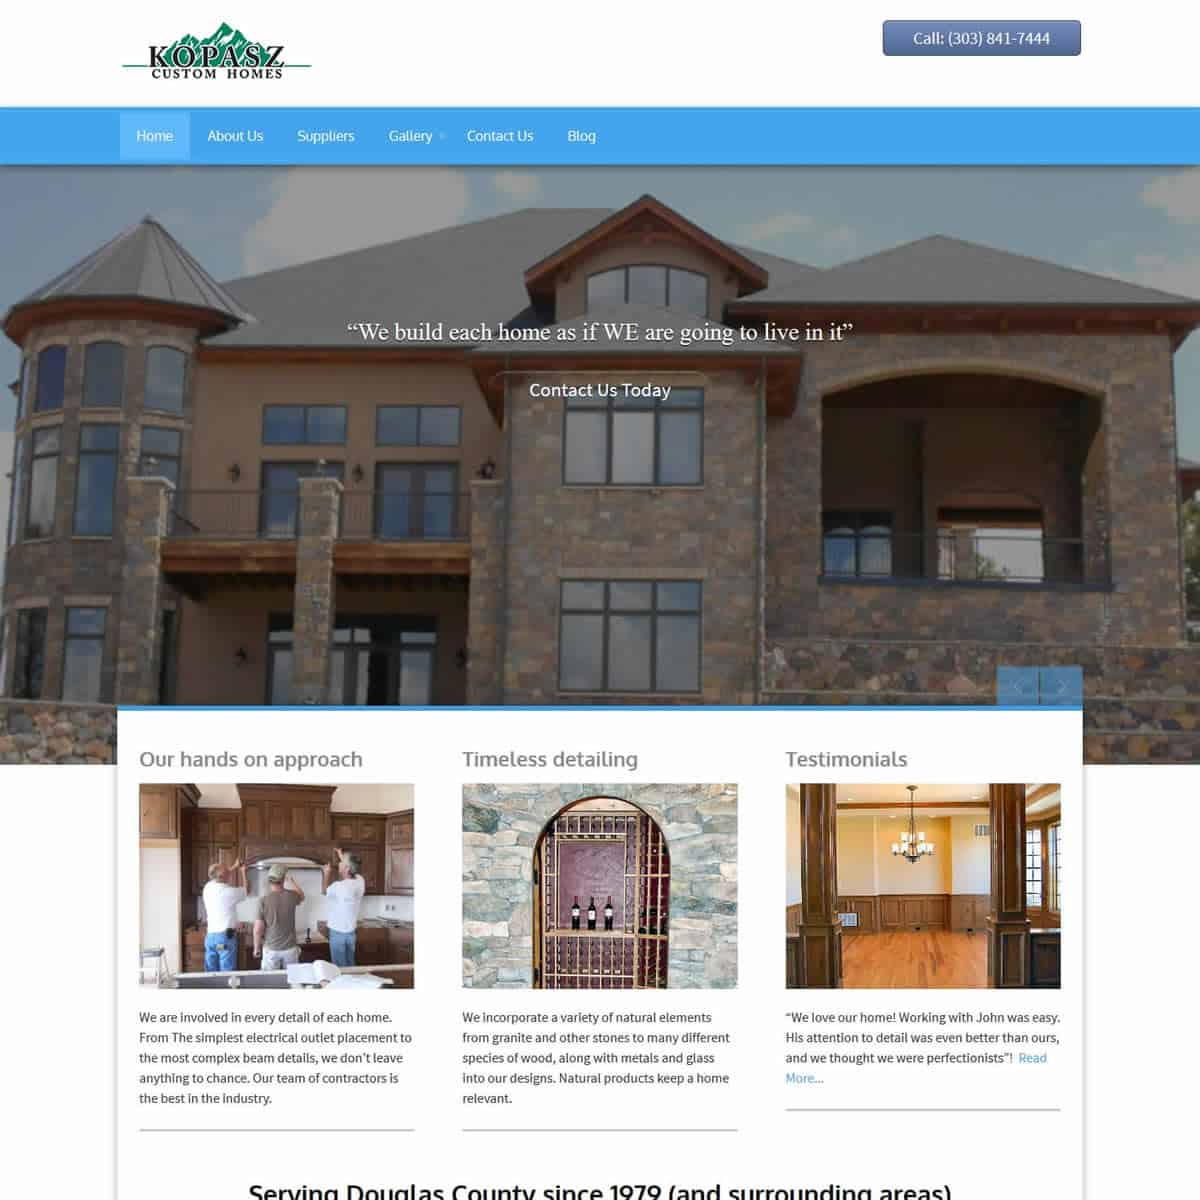 Kopasz custom homes online marketing media for Custom home online